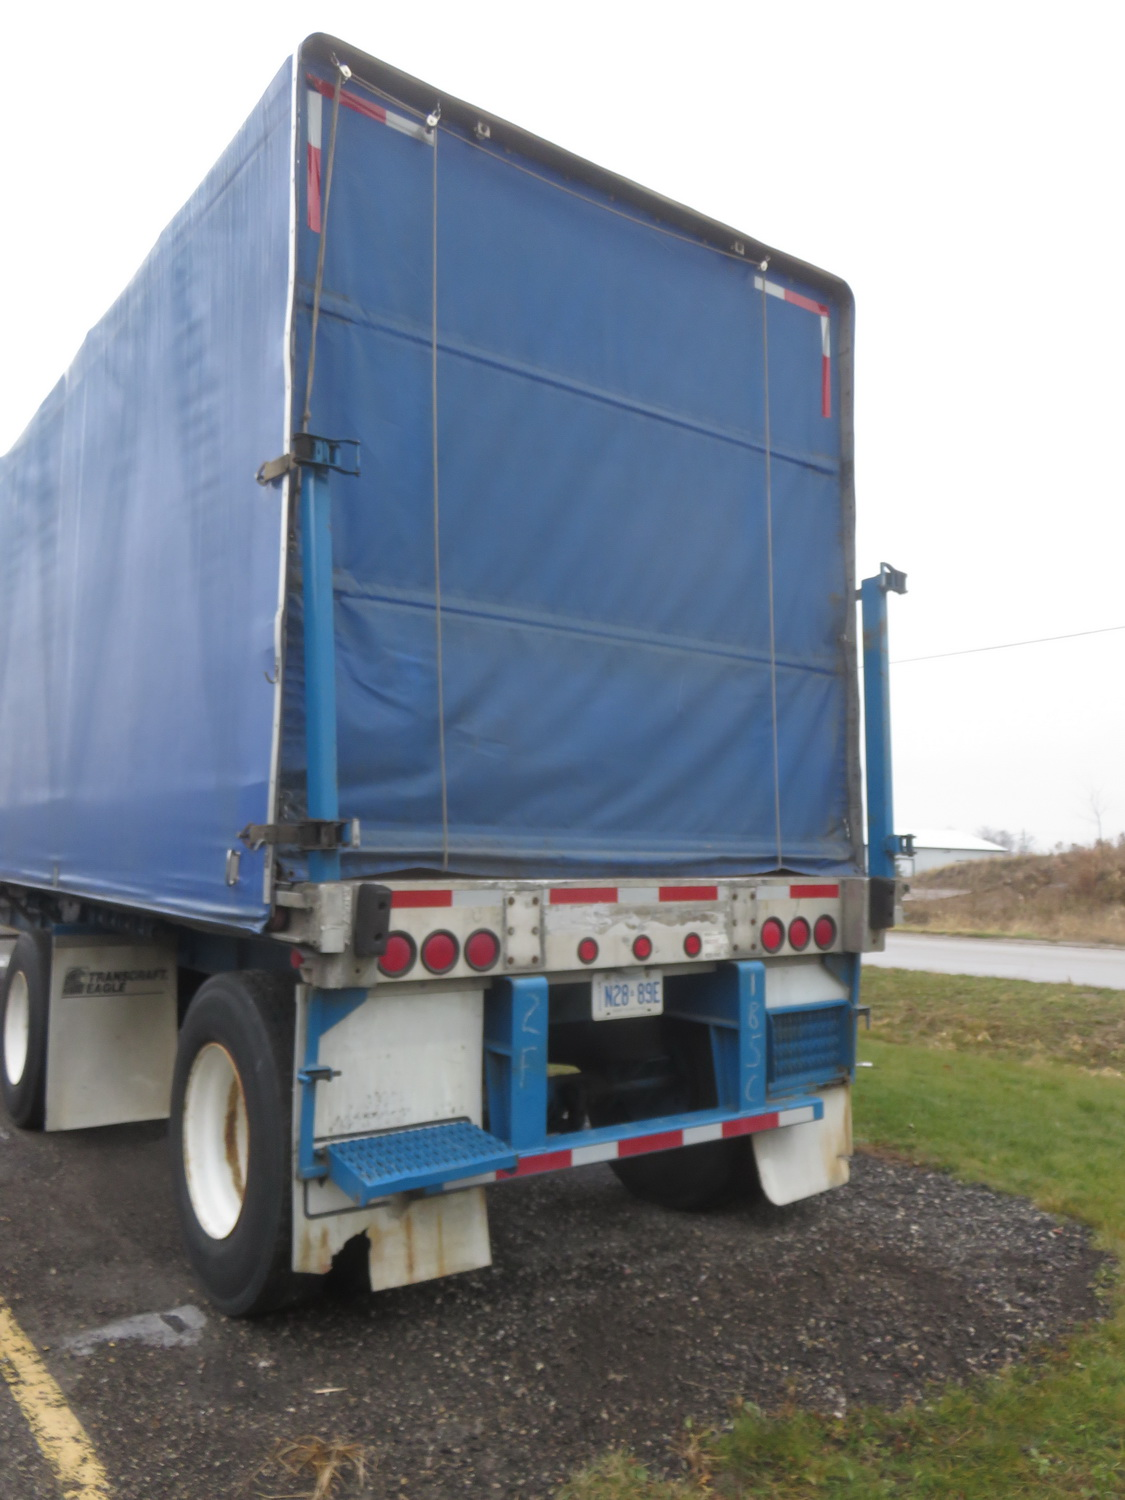 LODE KING 48' TANDEM AXLE BLUE CURTAIN SIDE TRAILER - S/N 2LDPA4829XC032084 - Image 6 of 6